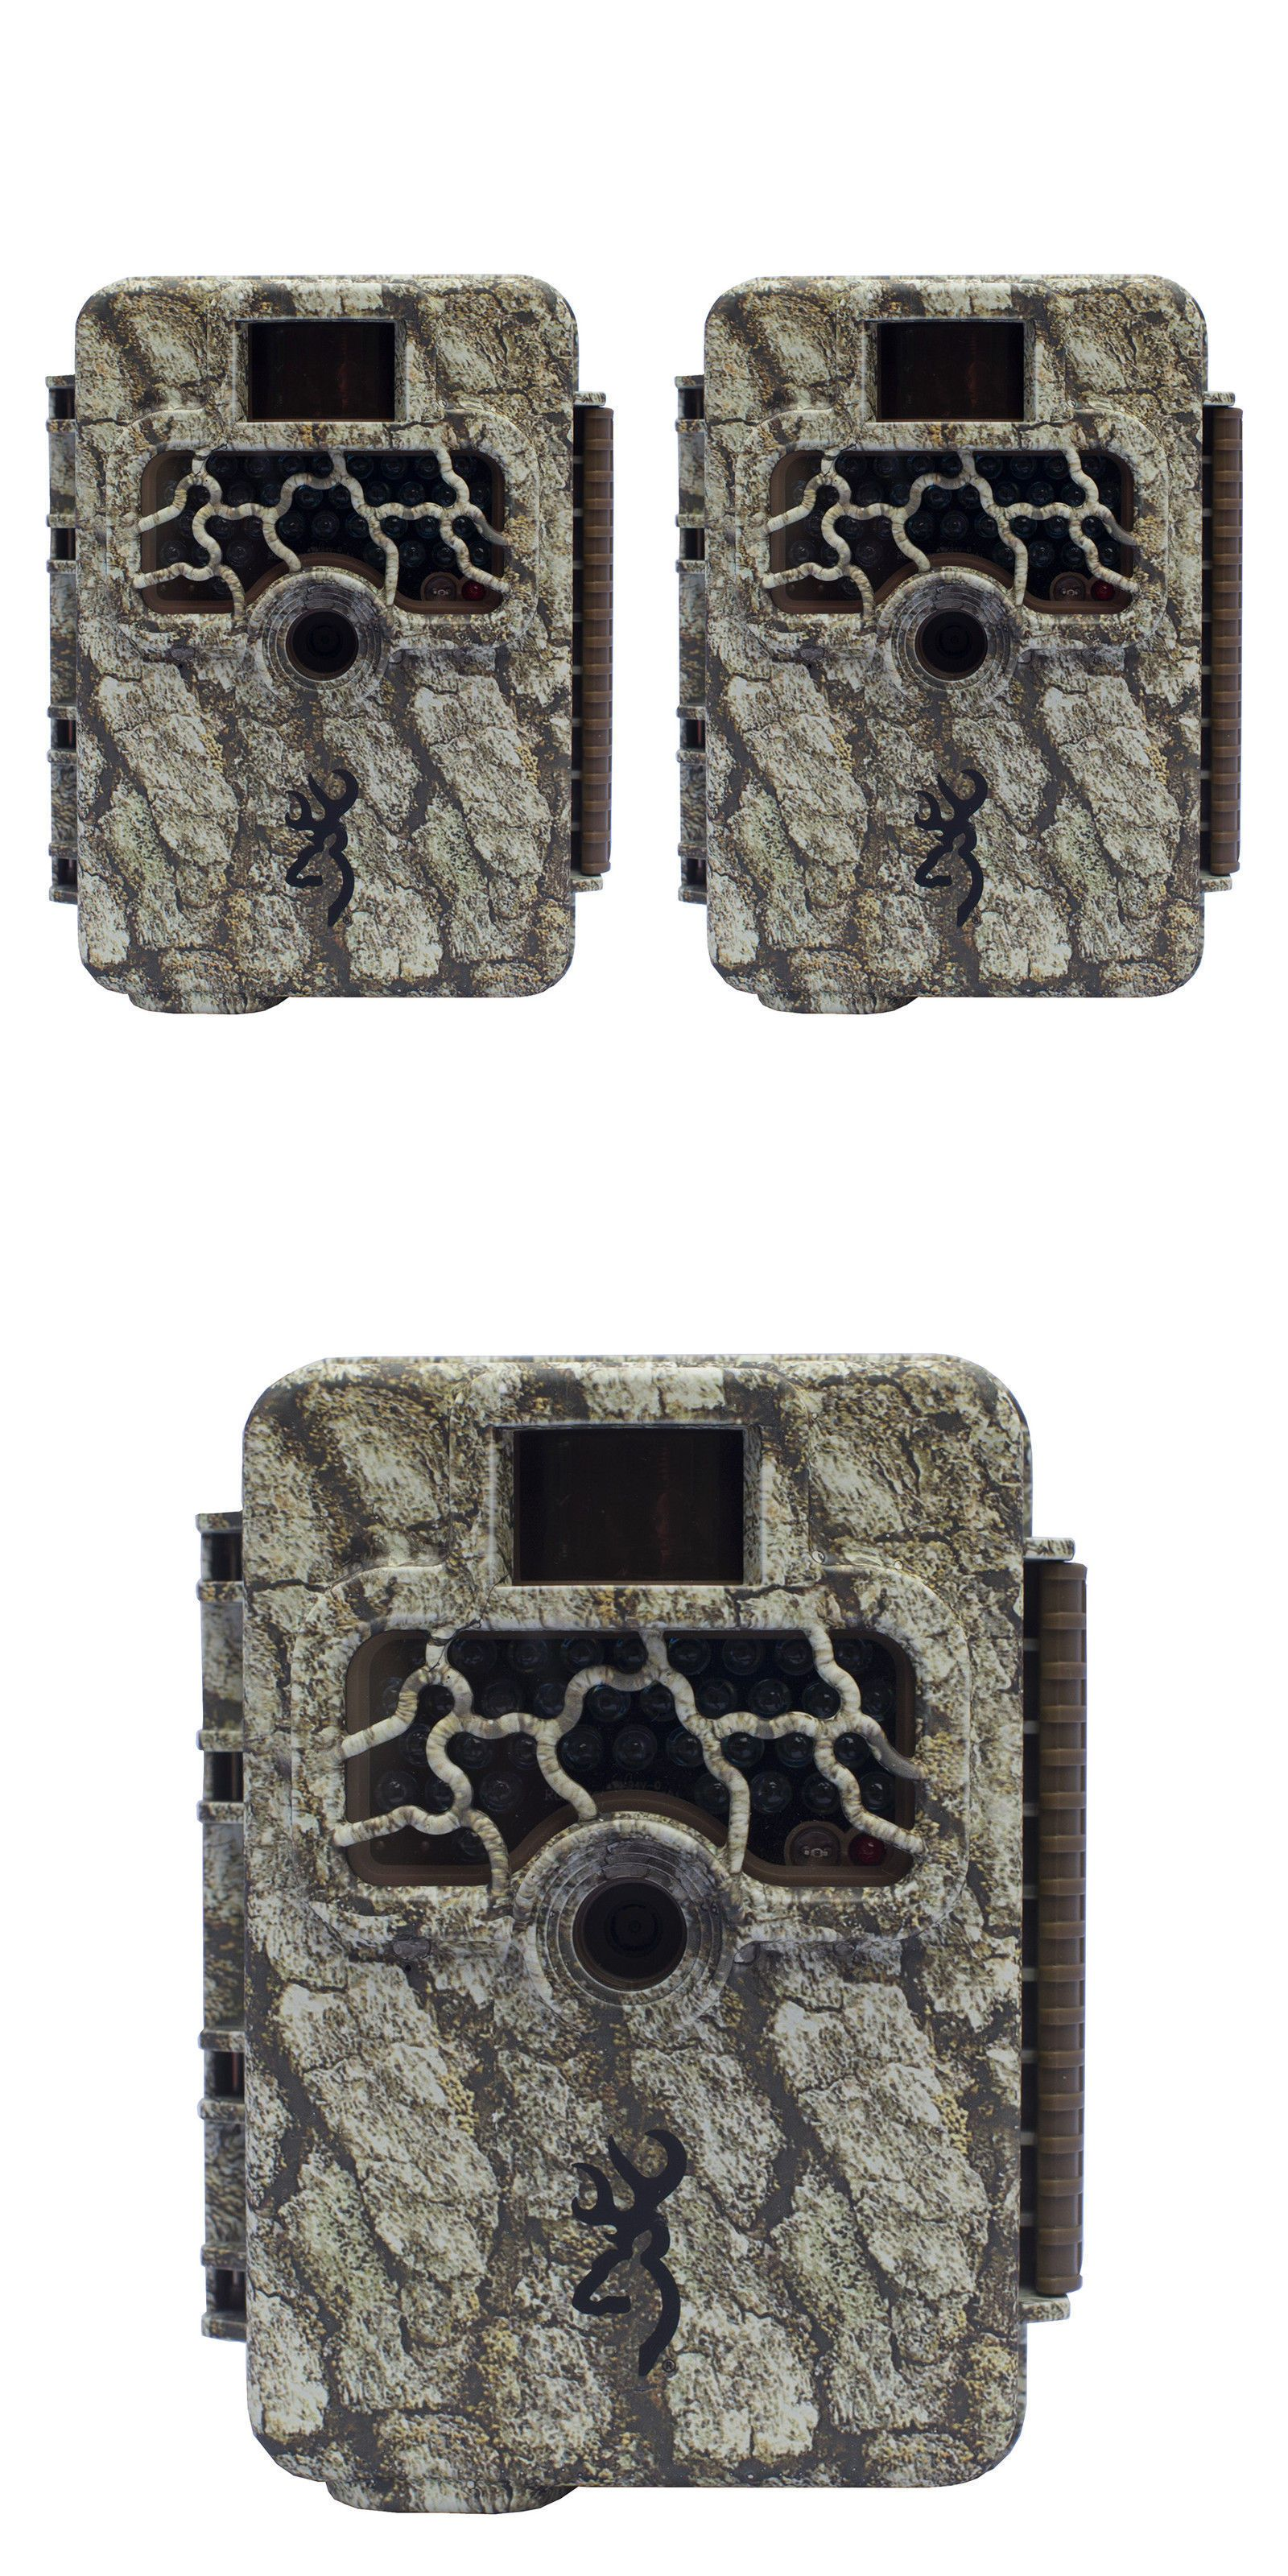 Game and Trail Cameras 52505: Browning Command Ops 14Mp Infrared Camera, 2 Pack | Btc4-14 -\u003e BUY IT NOW ONLY: $148.77 on #eBay #trail